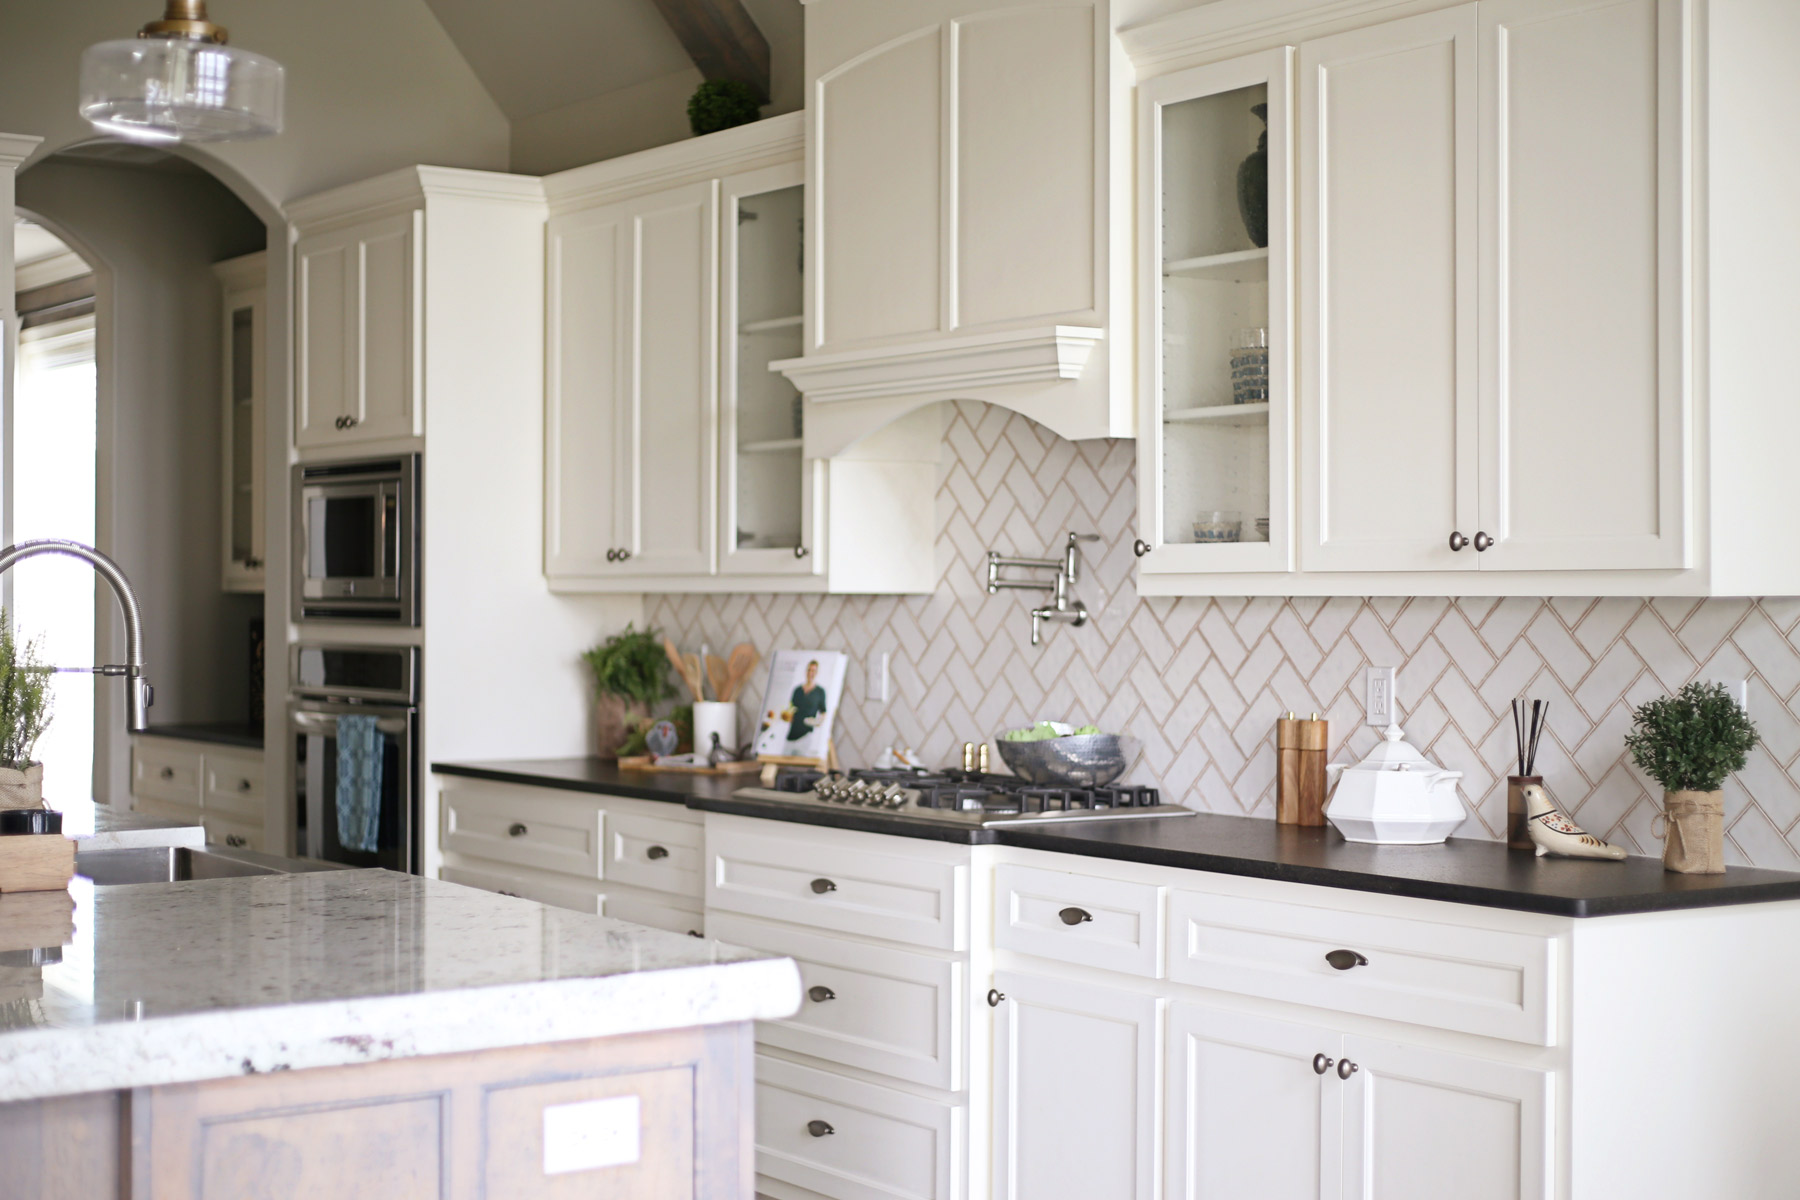 Kitchens - Southern Homes | Award Winning Tulsa Custom Home Builder